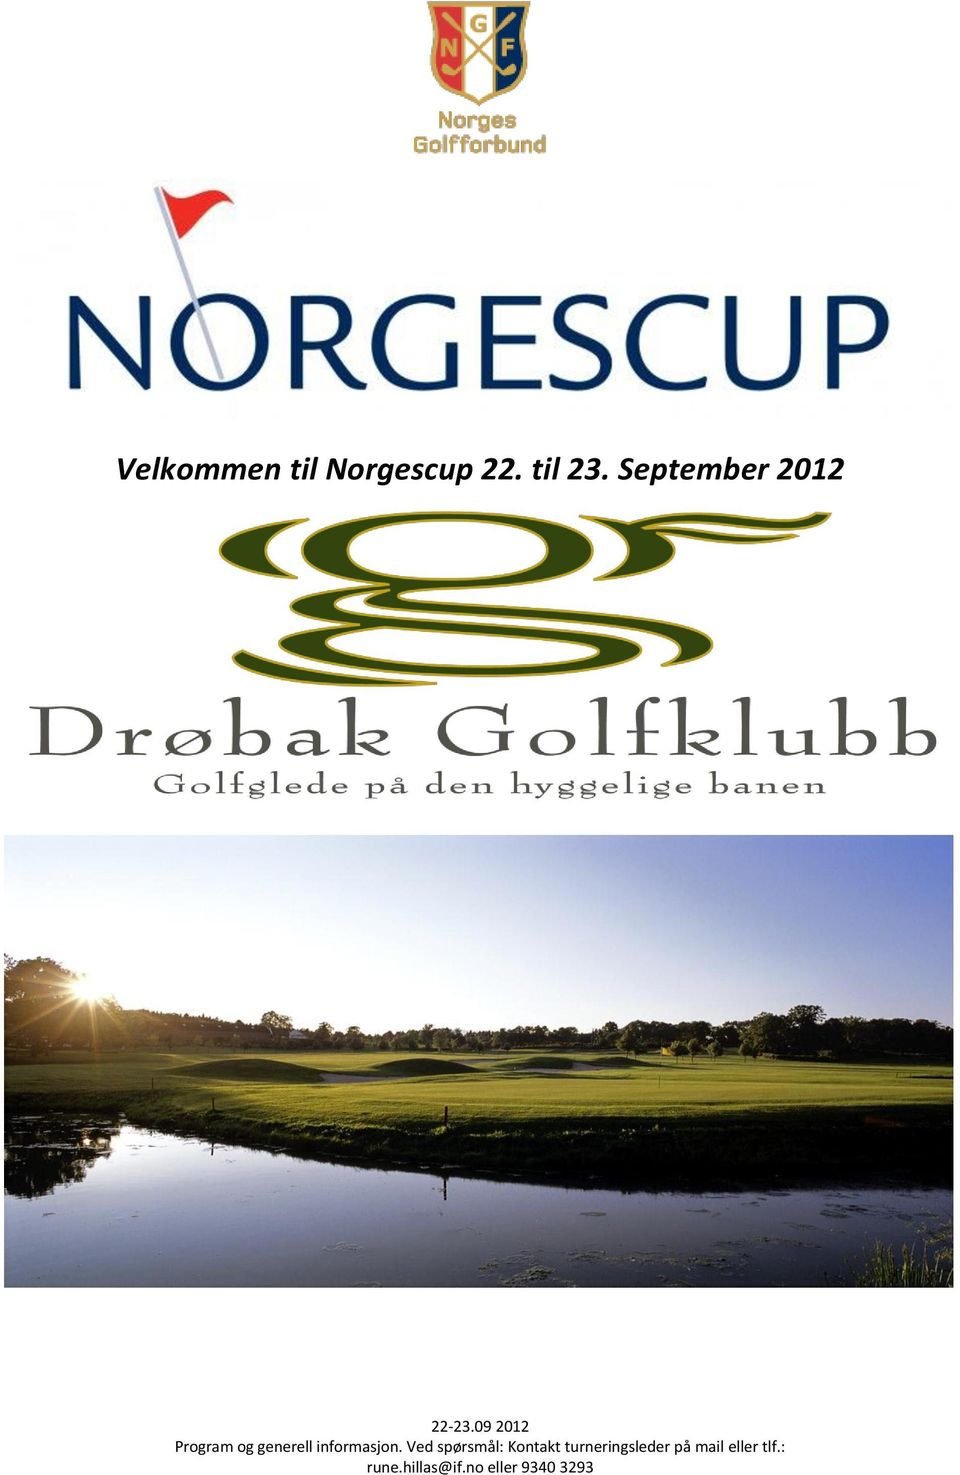 Norgescup 22.